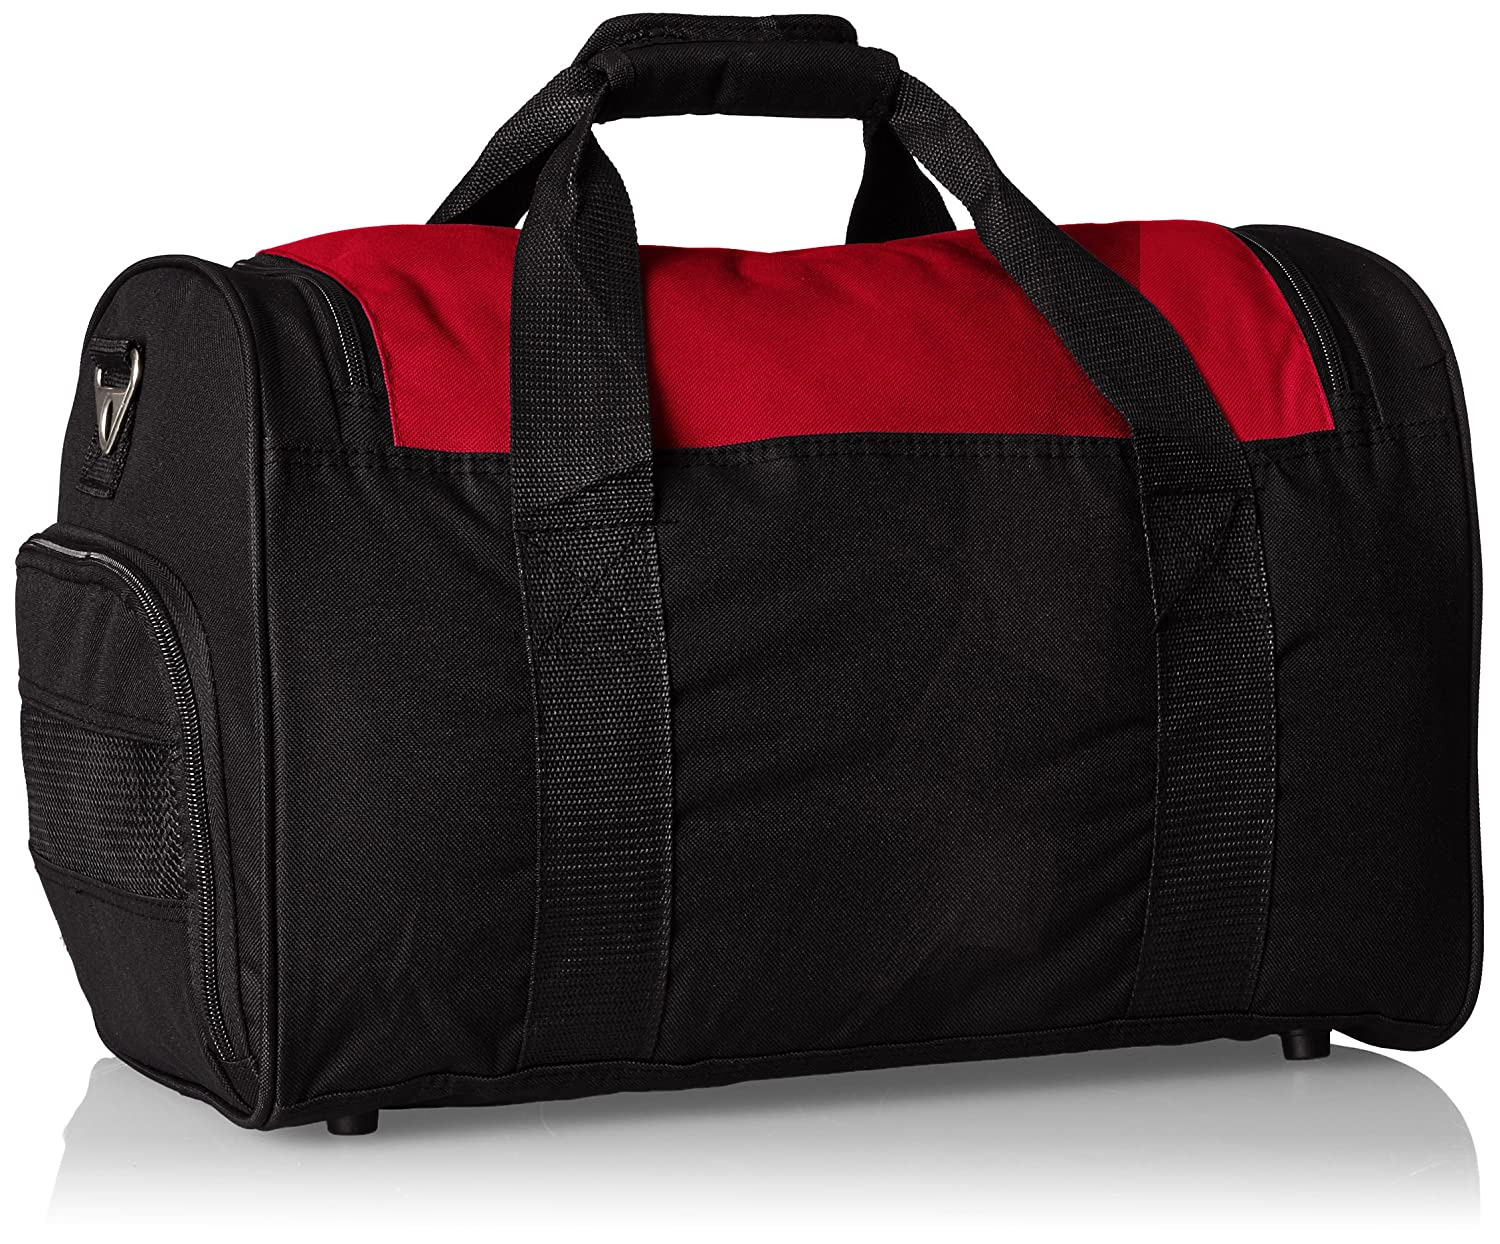 This is an image of a black and red gym bag